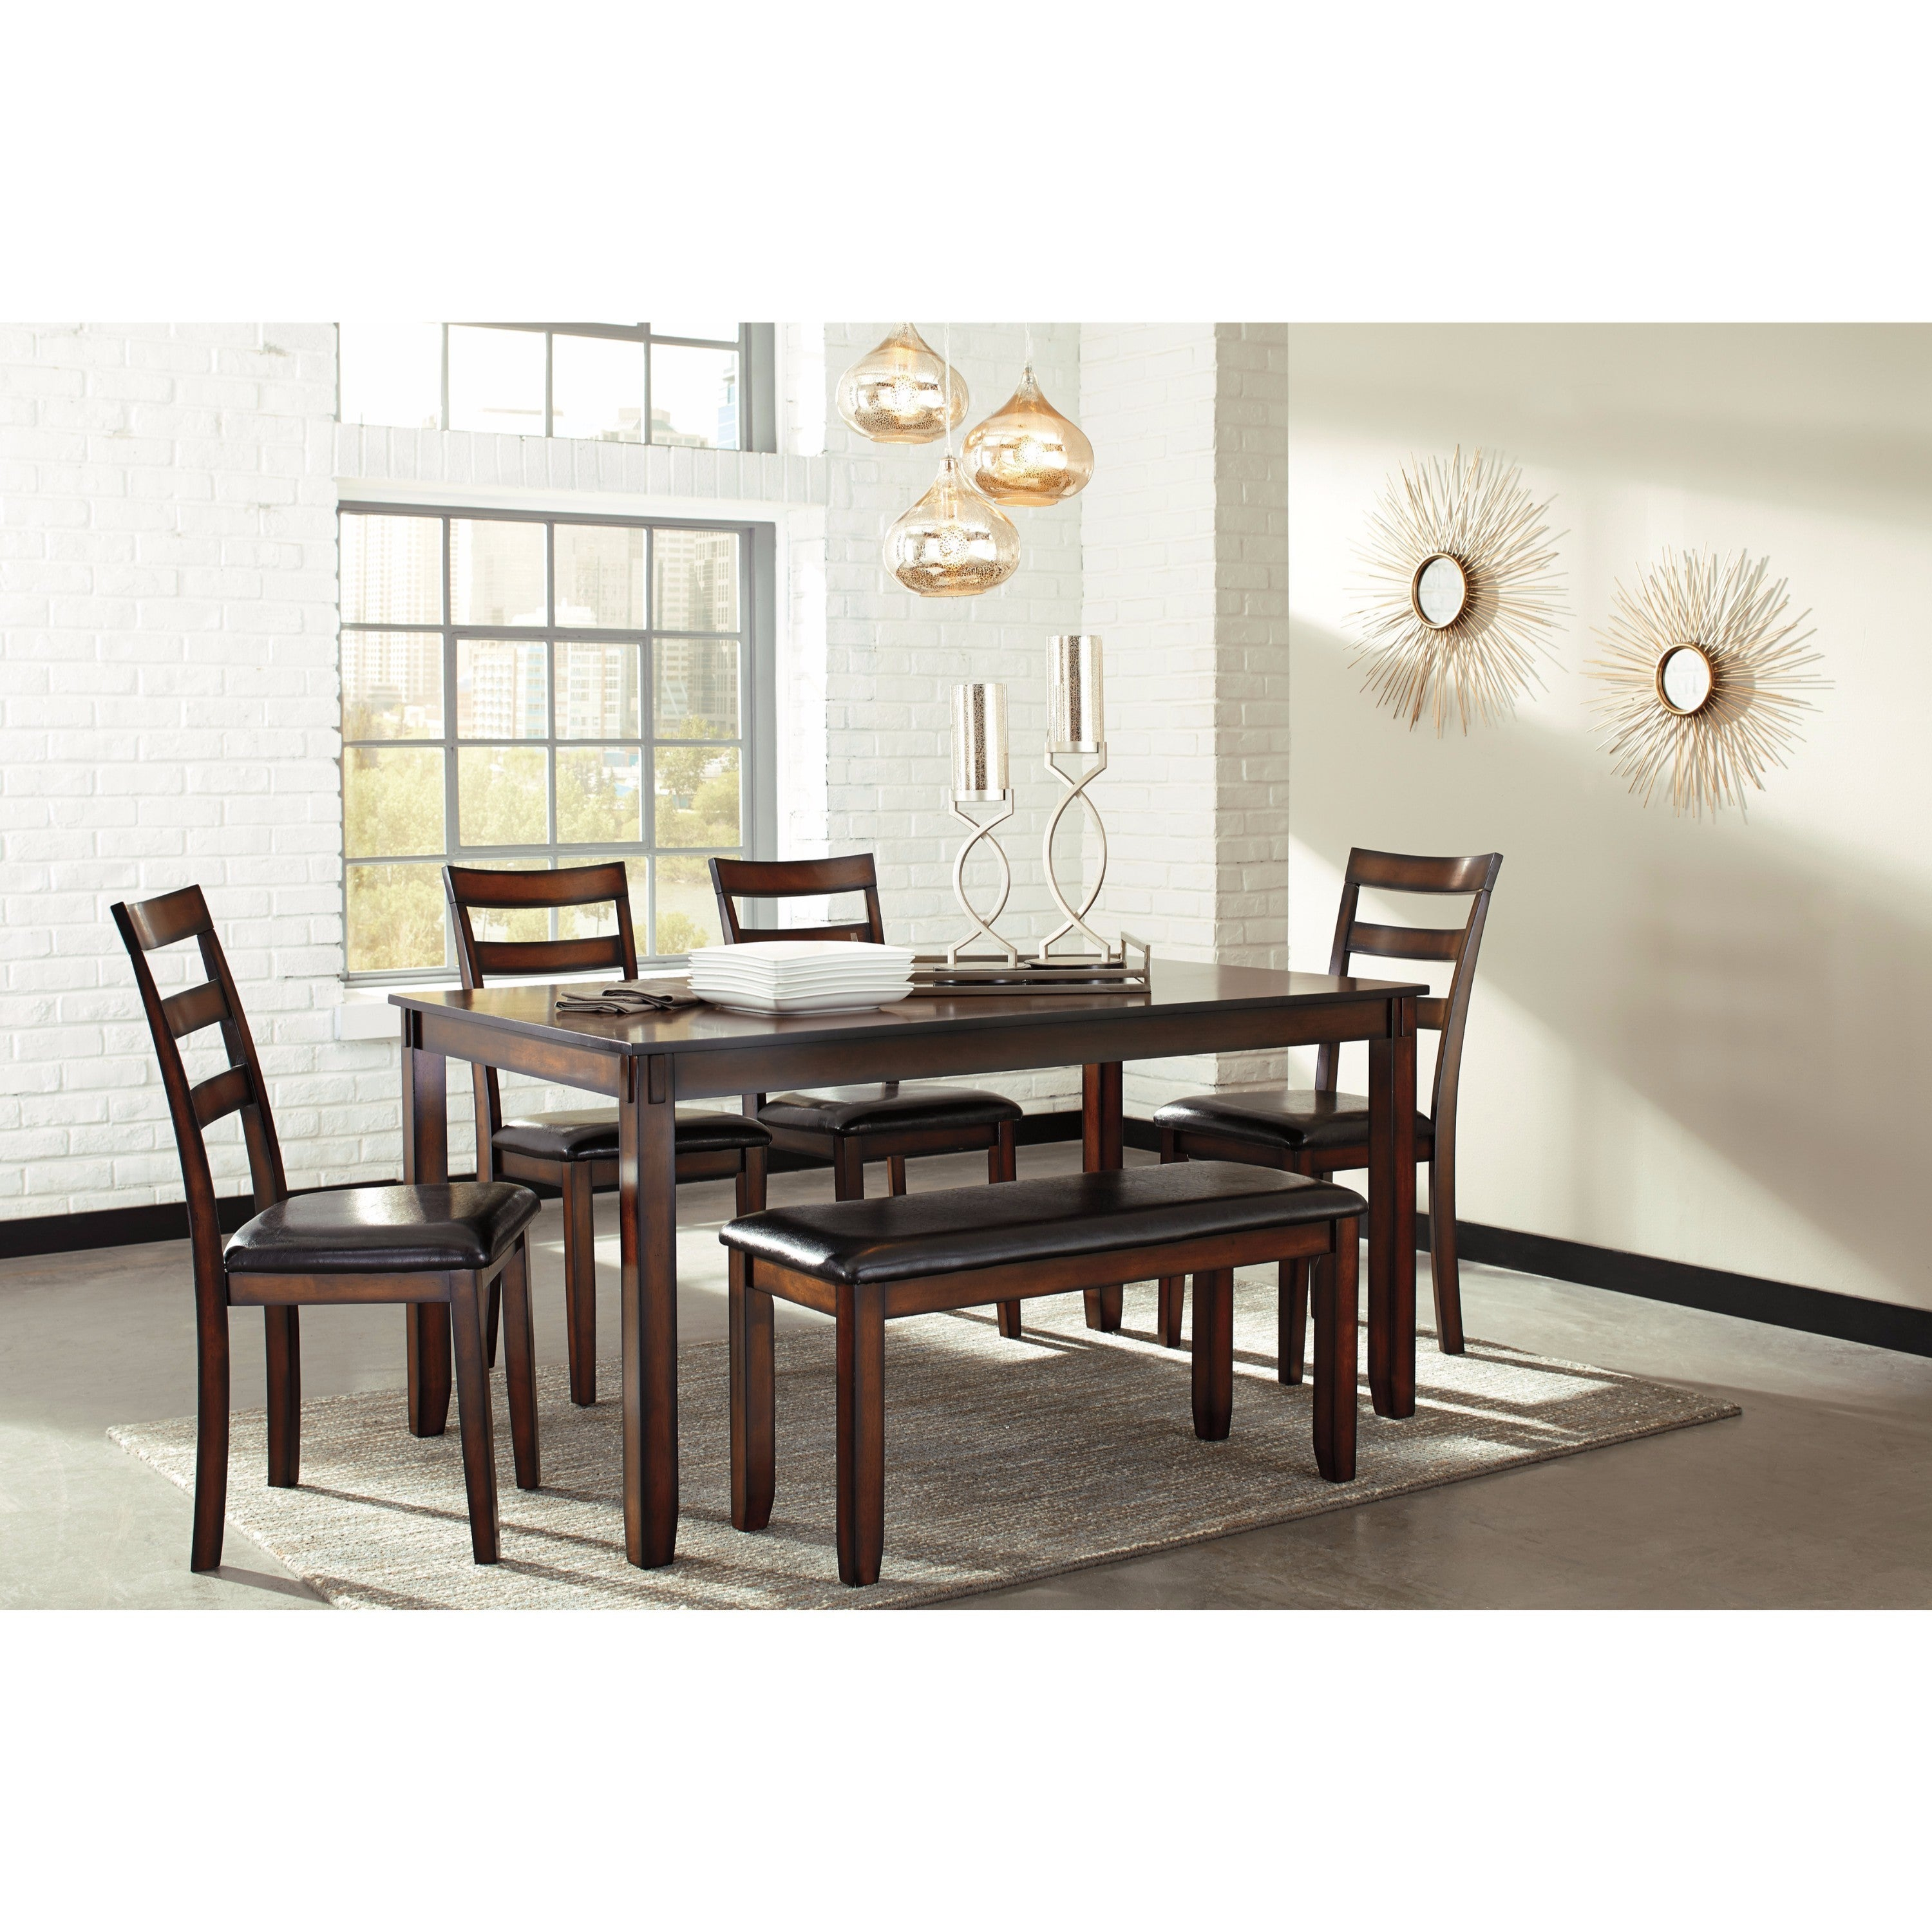 Buy 6 Piece Sets Kitchen & Dining Room Sets Online At Overstock In Current Osterman 6 Piece Extendable Dining Sets (Set Of 6) (Image 2 of 20)